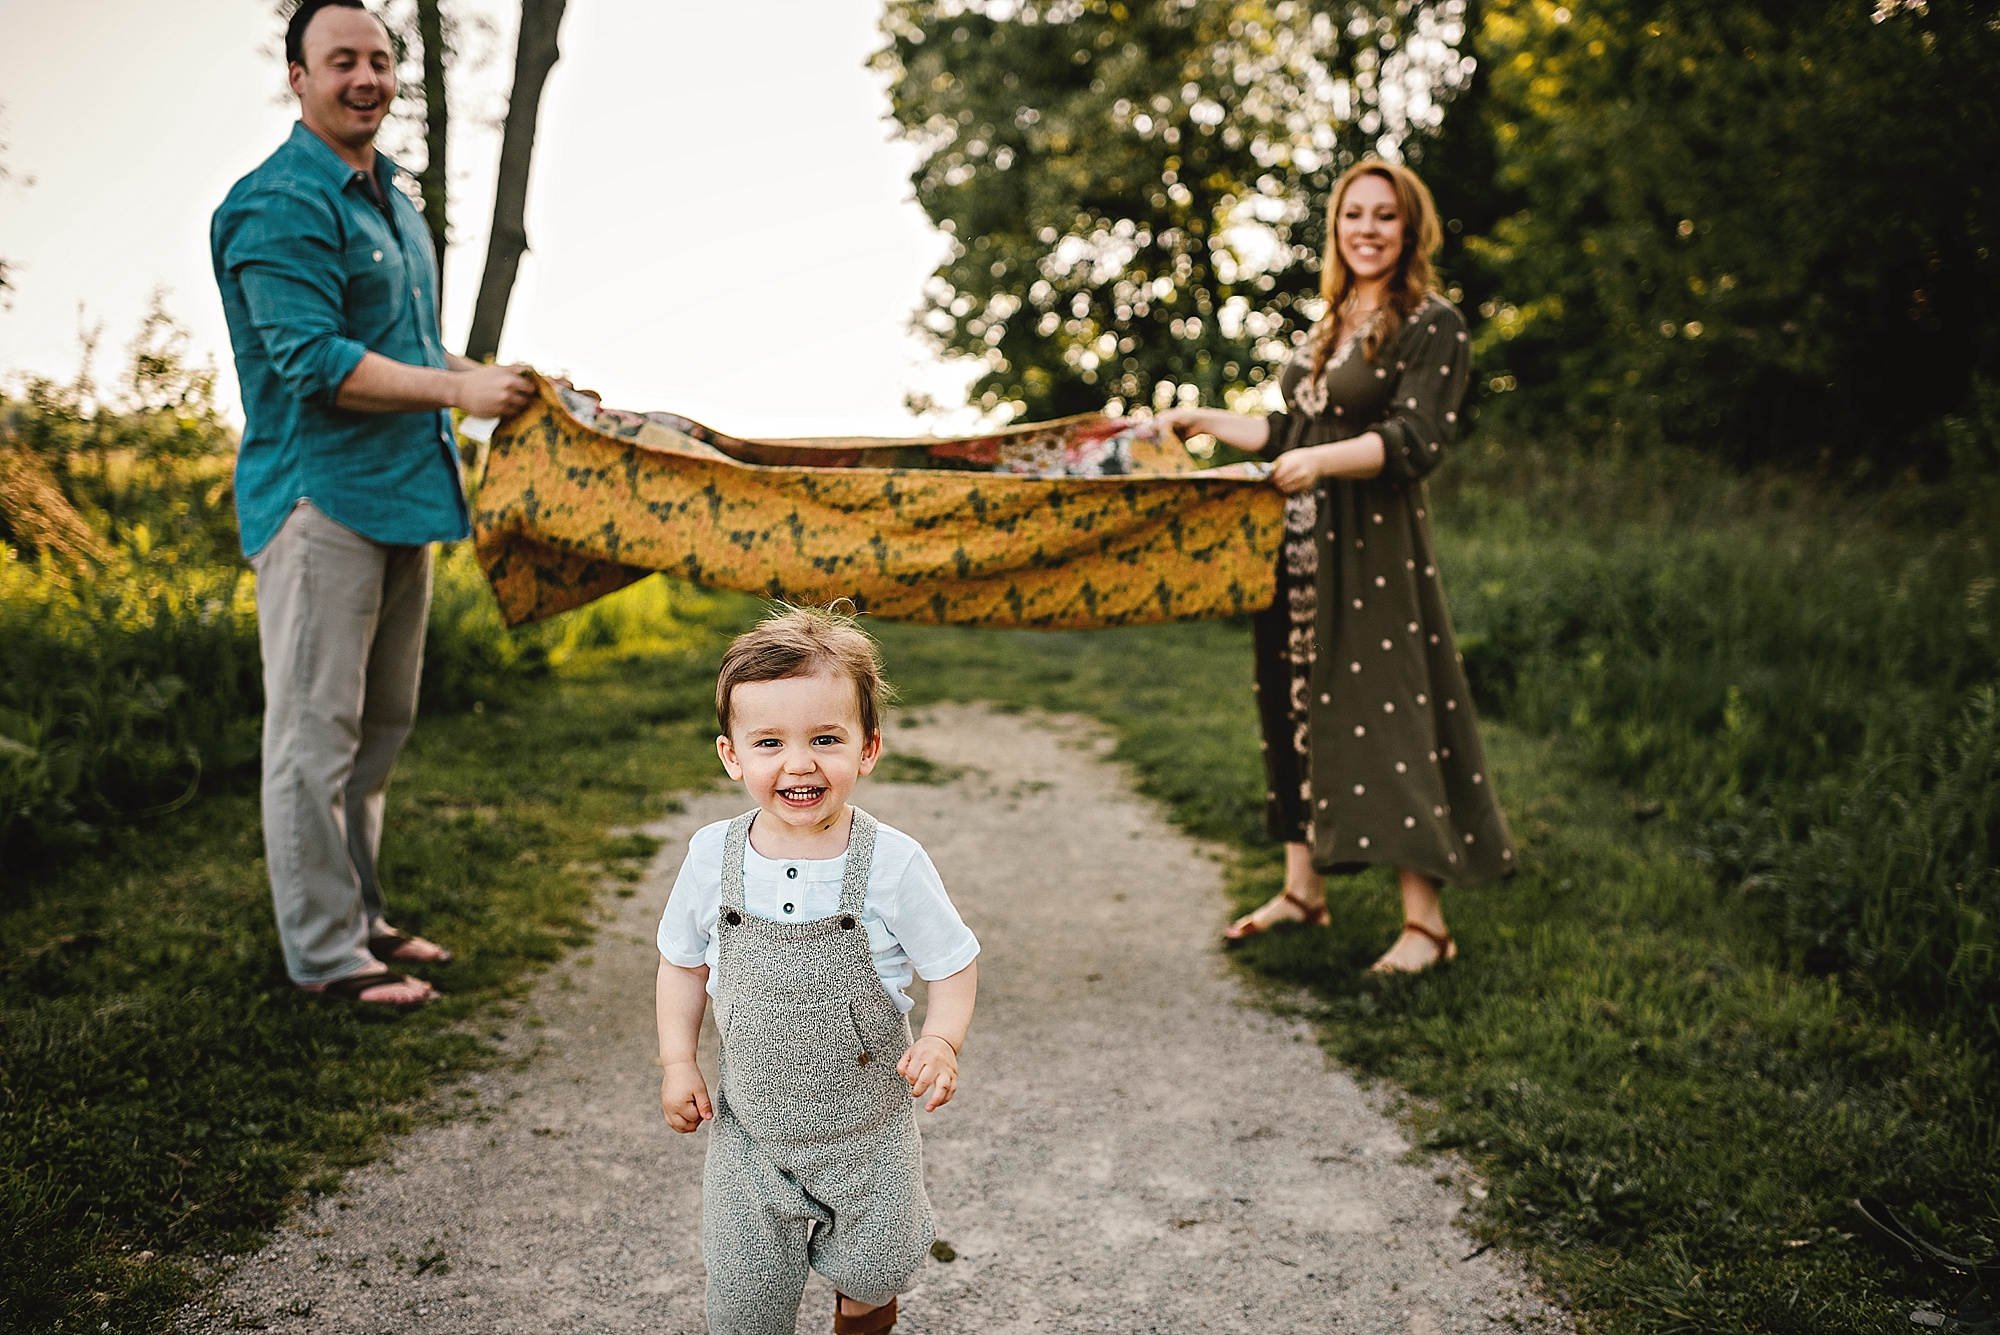 lauren-grayson-photography-cleveland-ohio-photographer-summer-outdoor-fields-family-child-baby-photo-session_0522.jpg